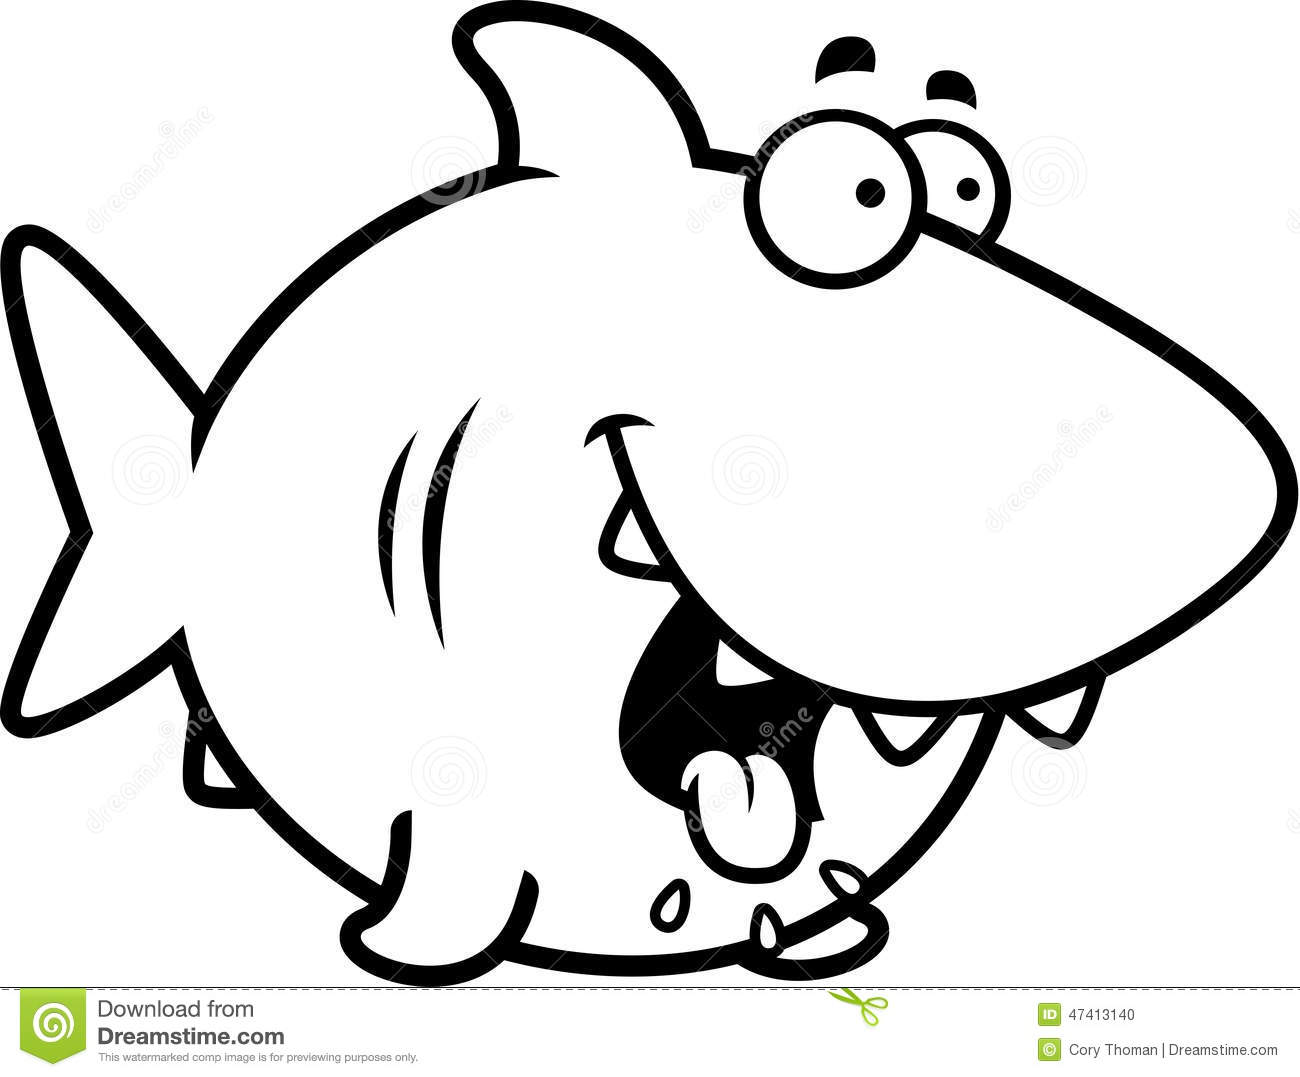 Hungry Cartoon Shark Stock Vector - Image: 47413140